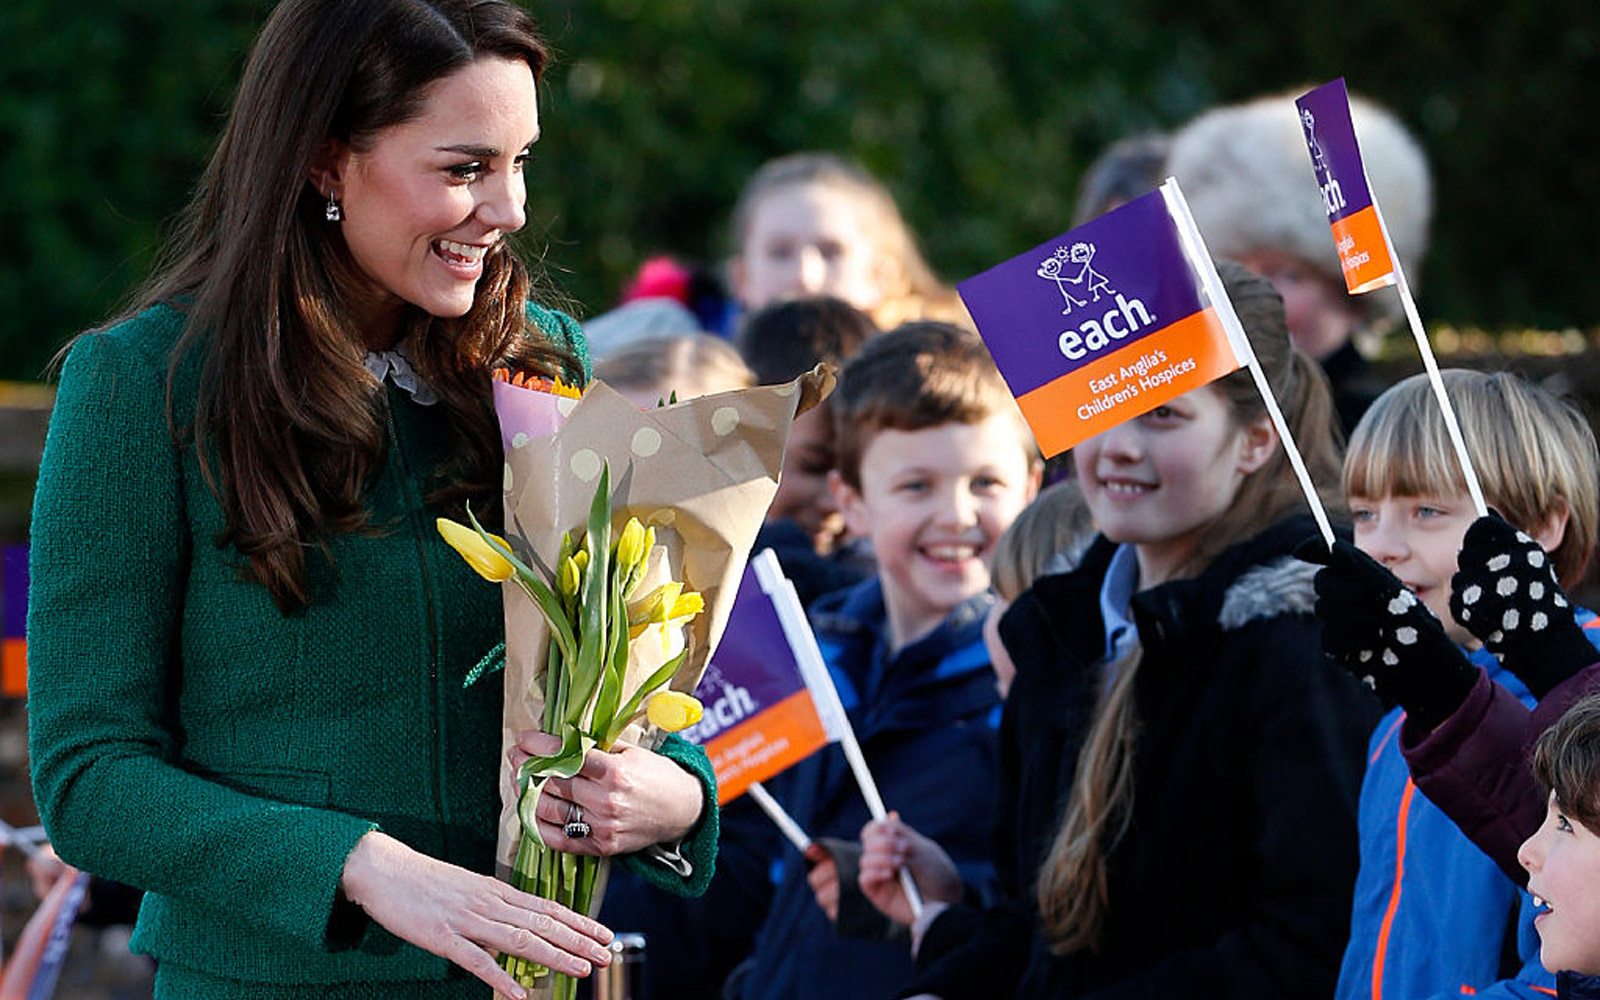 QUIDENHAM, NORFOLK - JANUARY 24:  Catherine, Duchess of Cambridge visits the East Anglia's Children's Hospices (EACH) on January 24, 2017 in Quidenham, Norfolk. HRH is Royal Patron of EACH and launched The Nook Appeal in 2014. (Photo by Adrian Dennis - WP